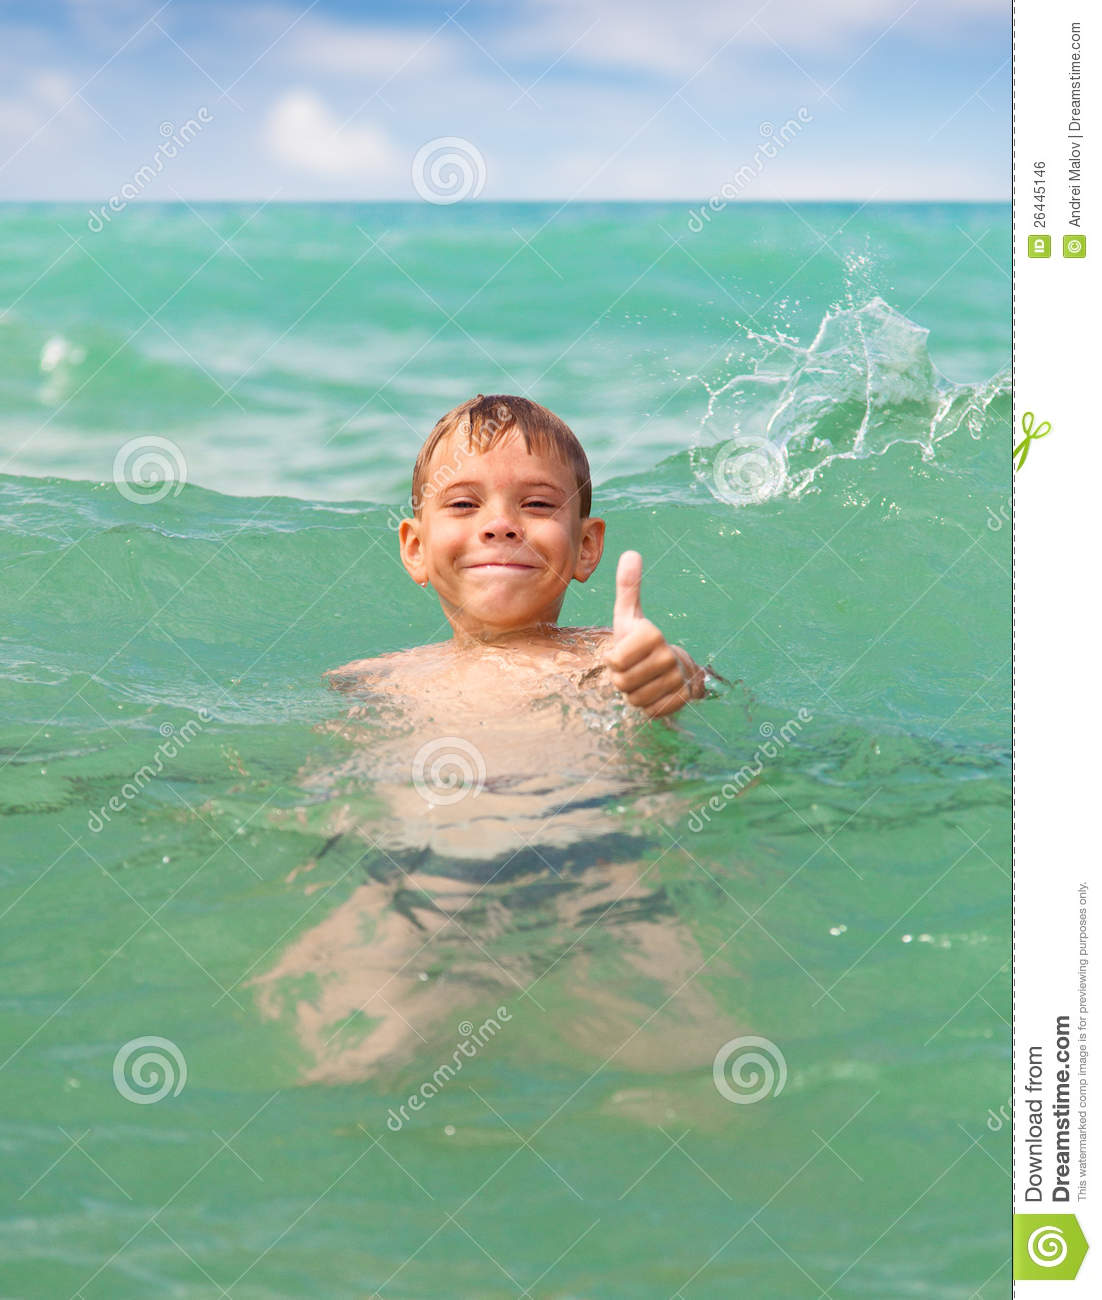 Free Stock Photos Online Royalty Free Stock Image Pool Boy Image | Male Models Picture